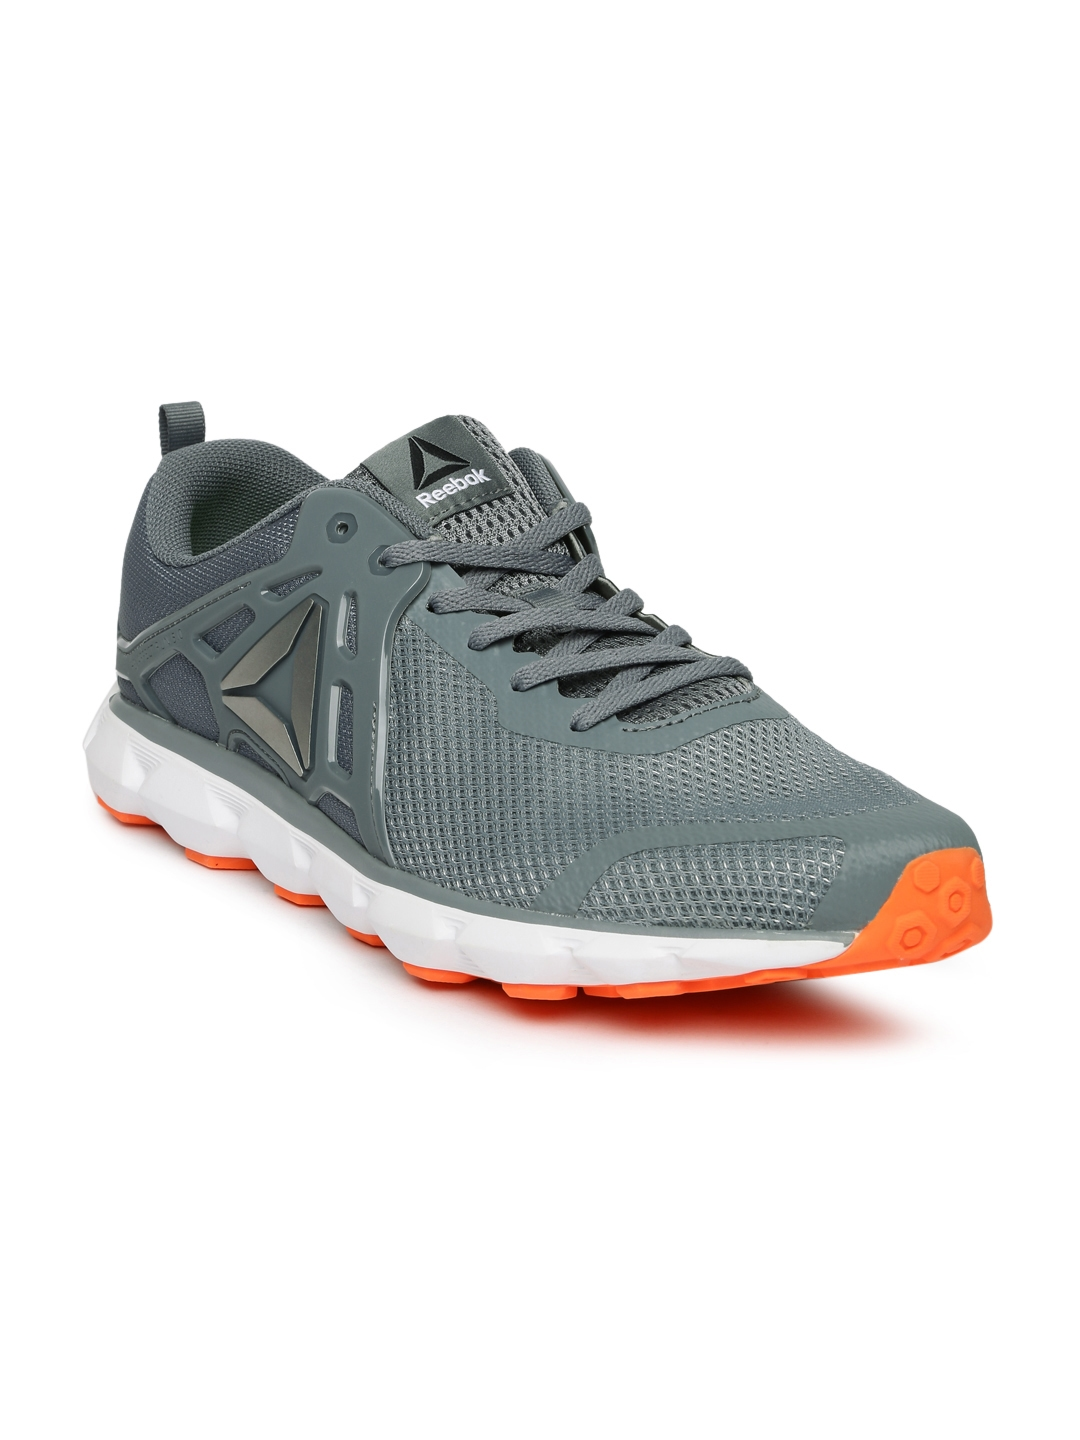 60cdea6611ce89 Buy Reebok Men Grey HEXAFFECT RUN 5.0 MTM Running Shoes - Sports ...